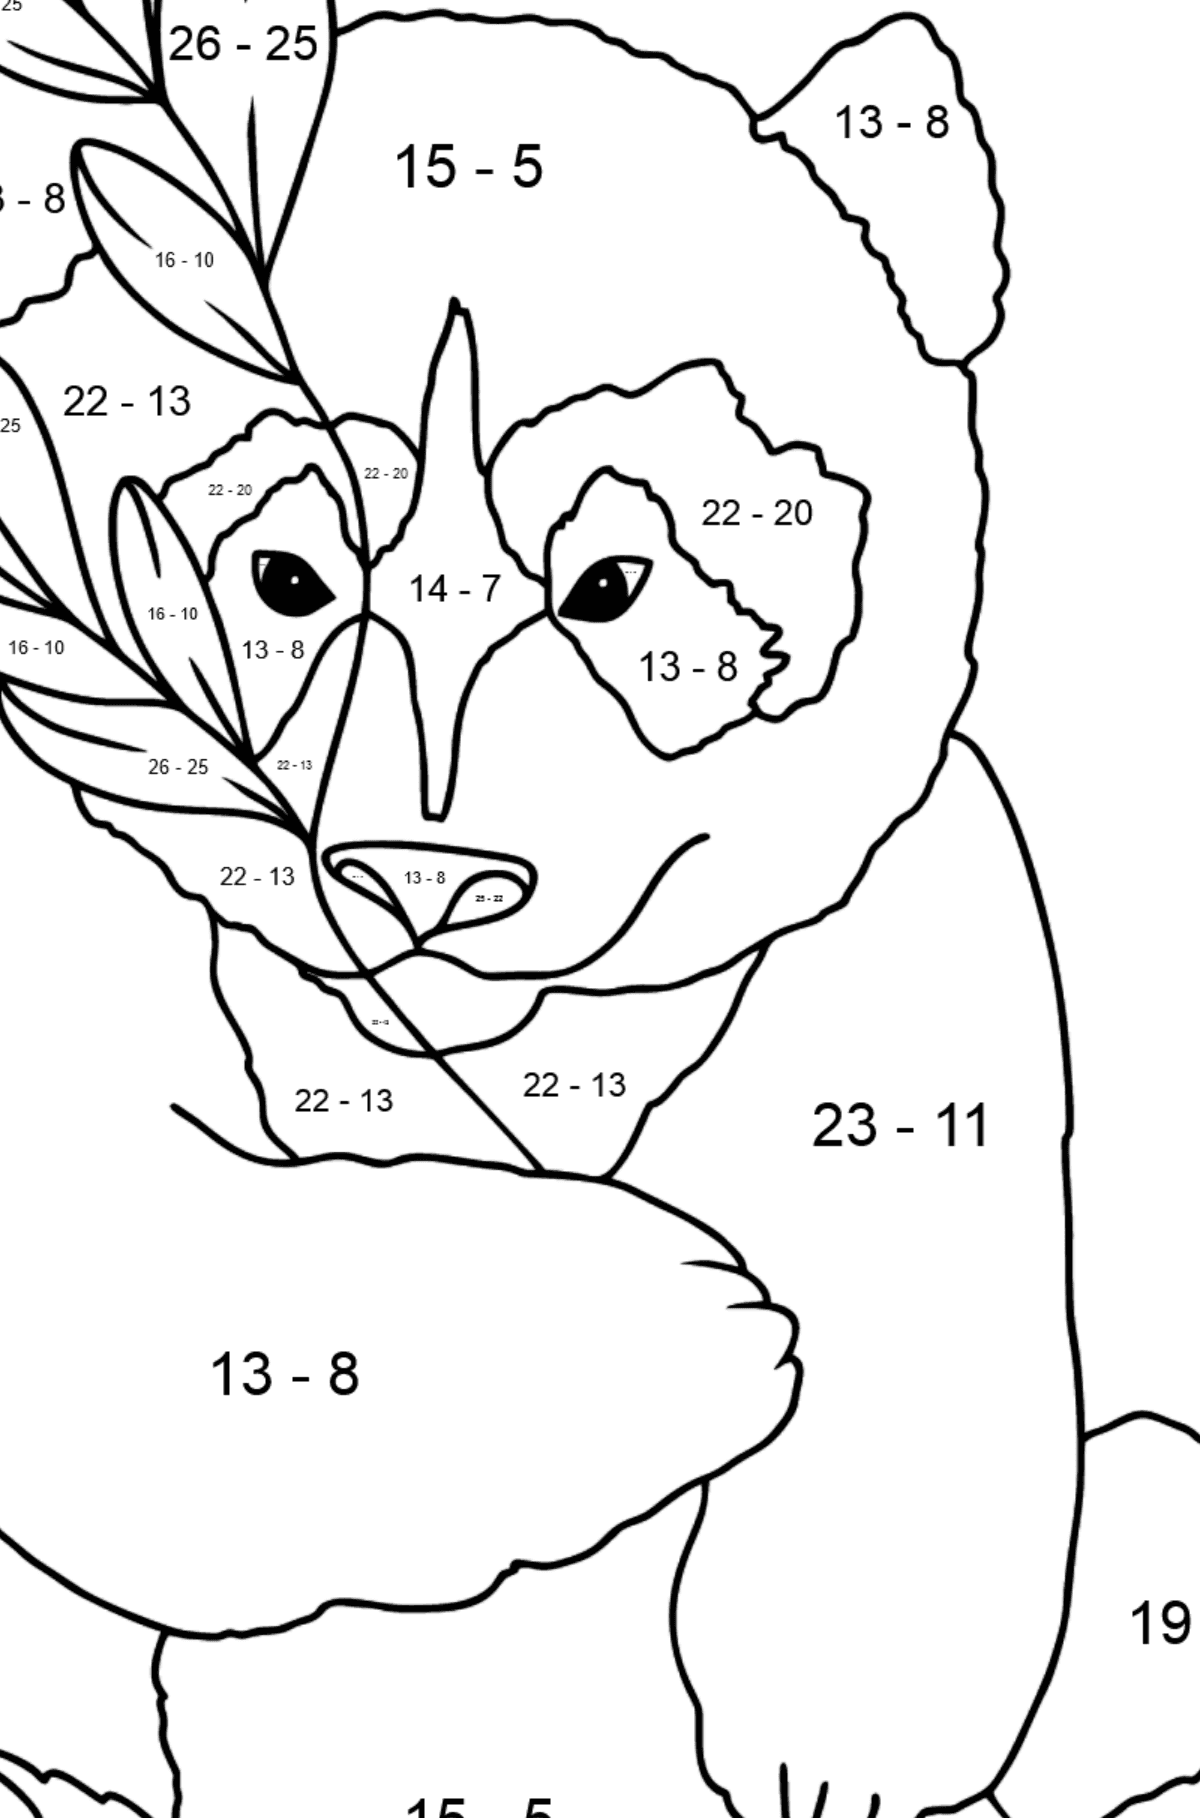 Coloring Page - A Panda is Having a Rest - Math Coloring - Subtraction for Kids